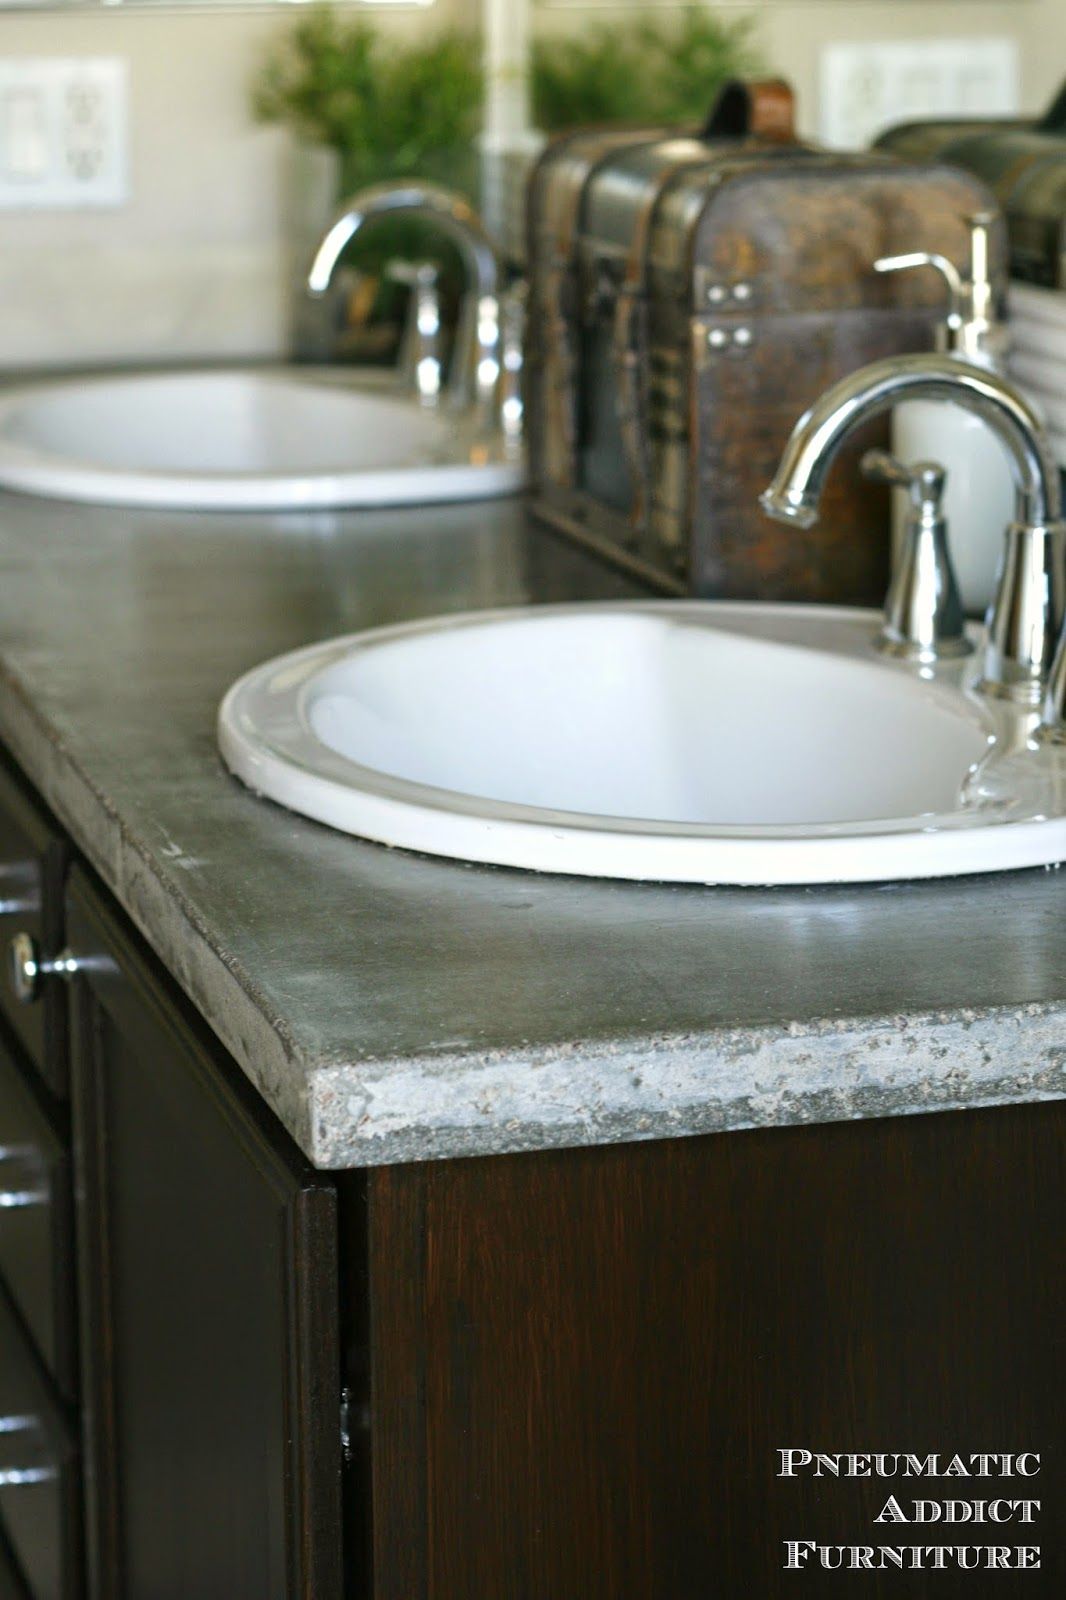 DIY Concrete Countertop With Sink Openings Pneumatic Addict - How much is a bathroom sink